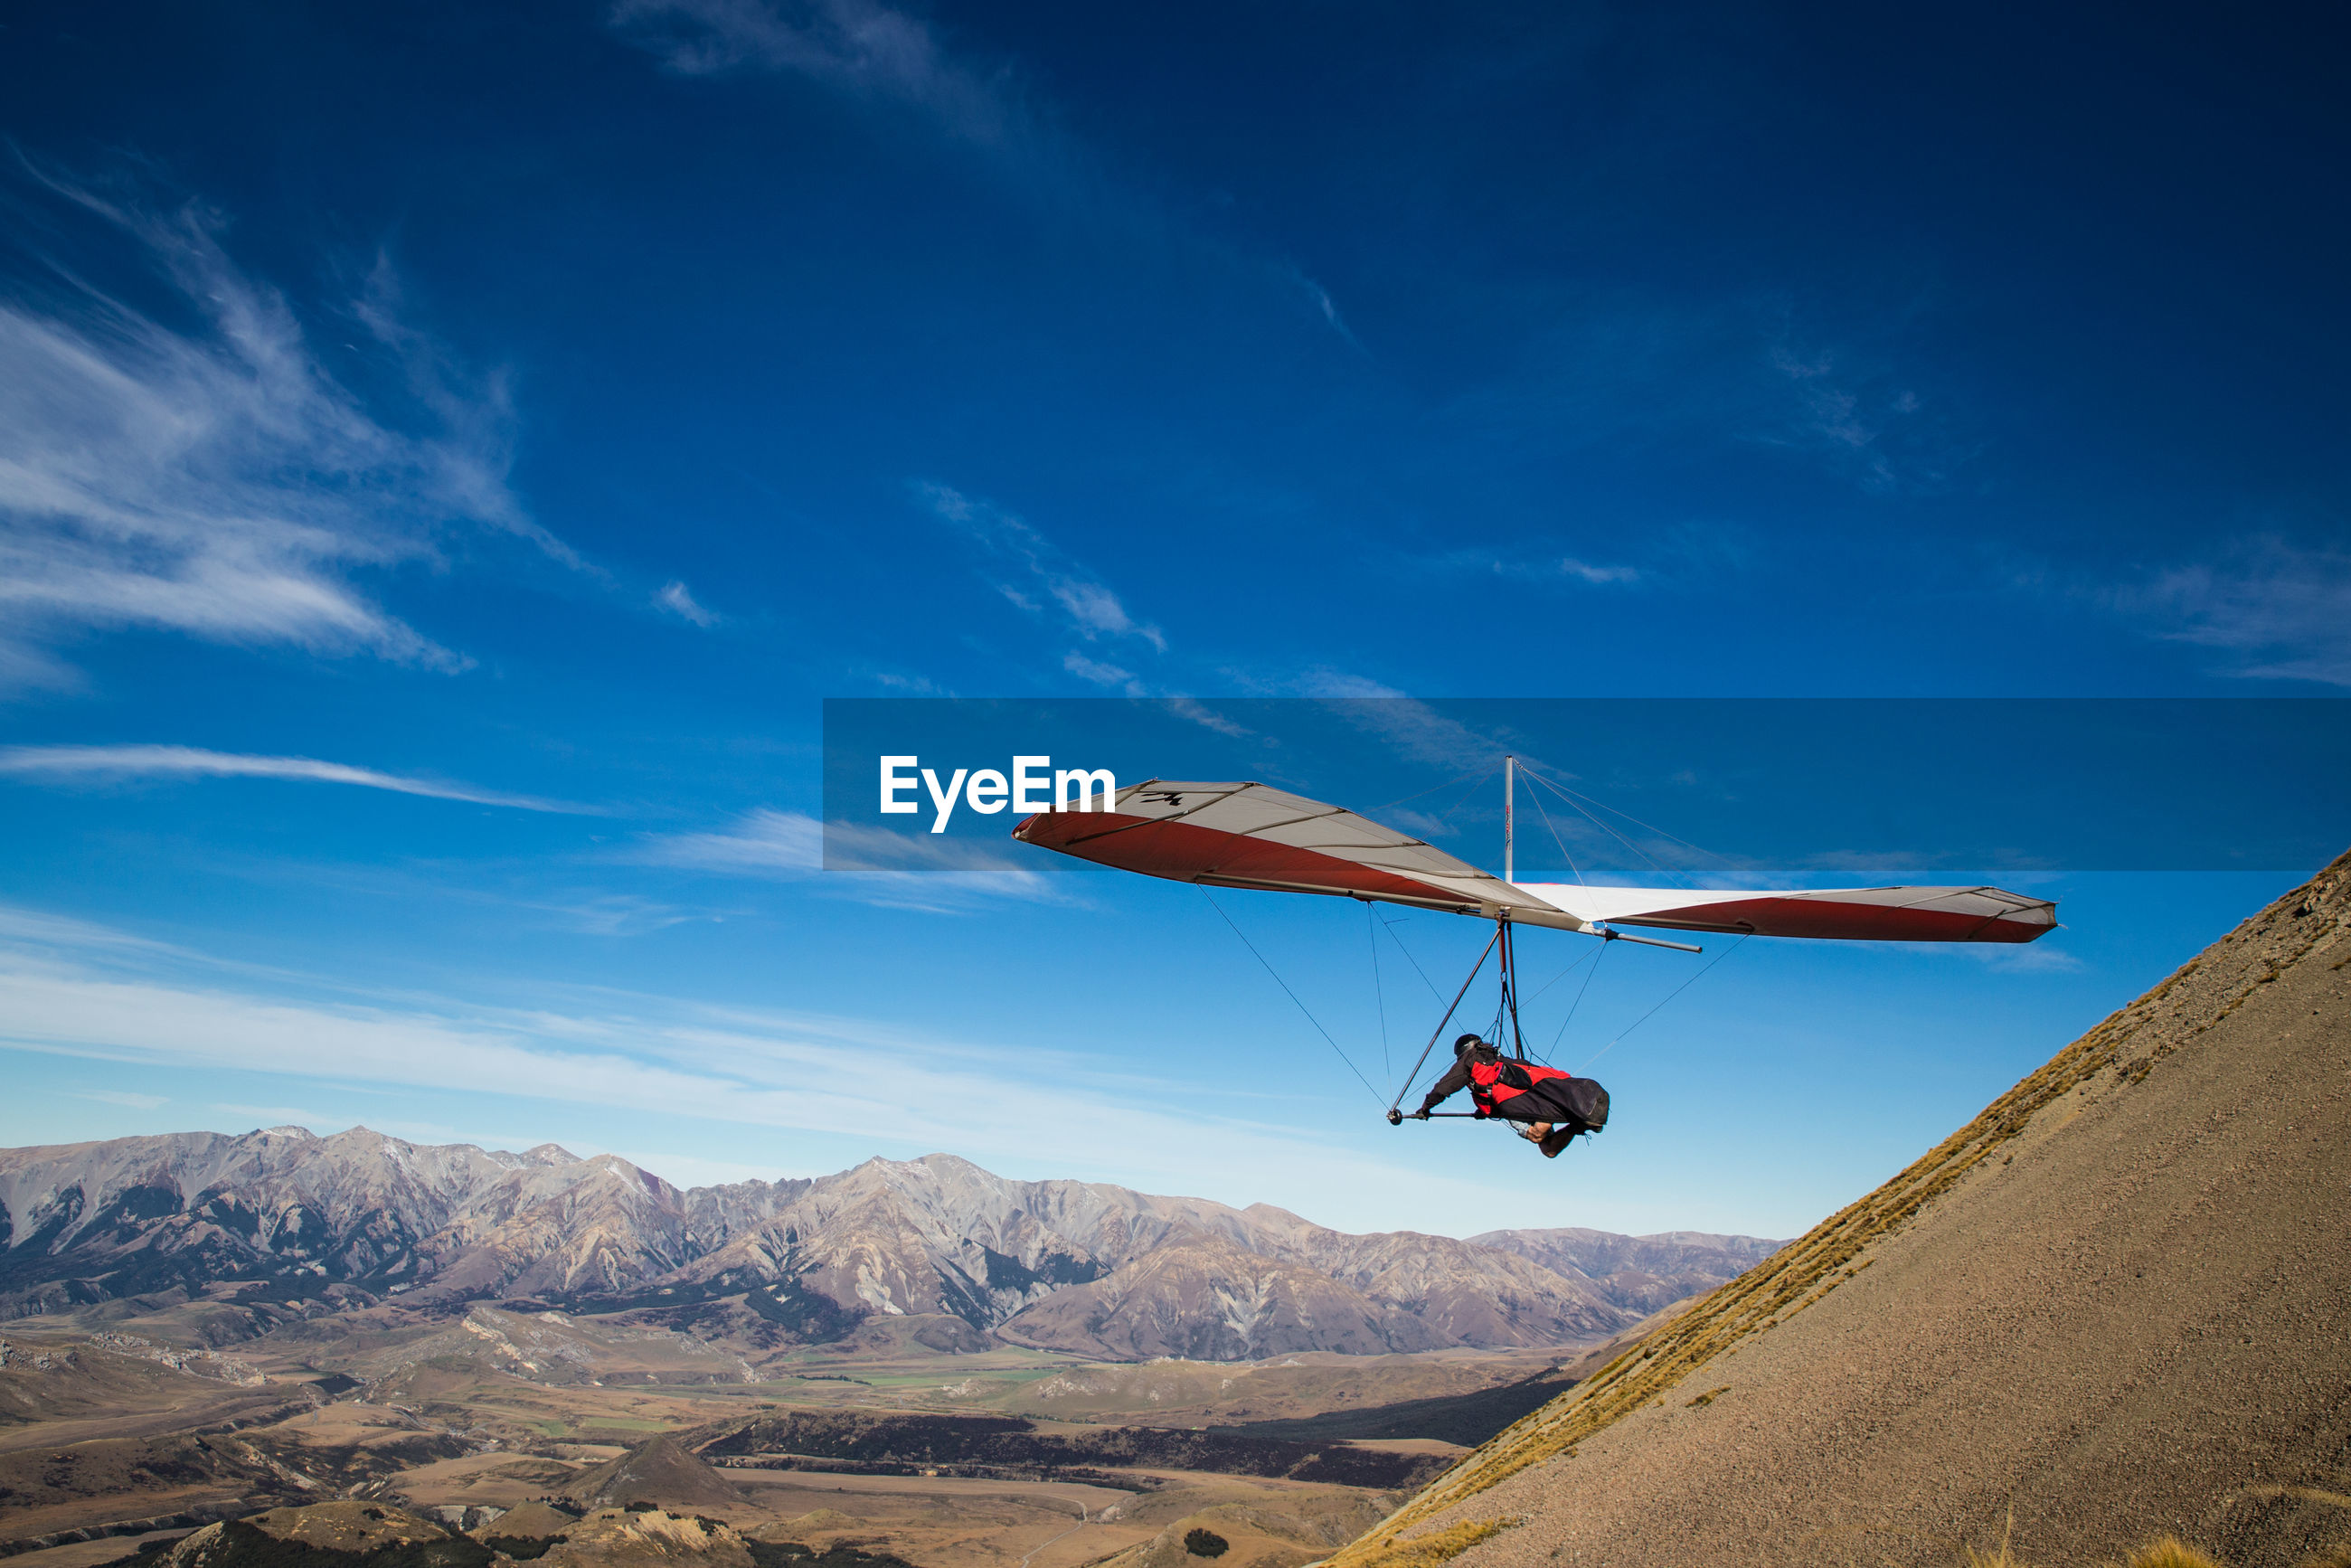 LOW ANGLE VIEW OF HELICOPTER FLYING IN MOUNTAINS AGAINST SKY